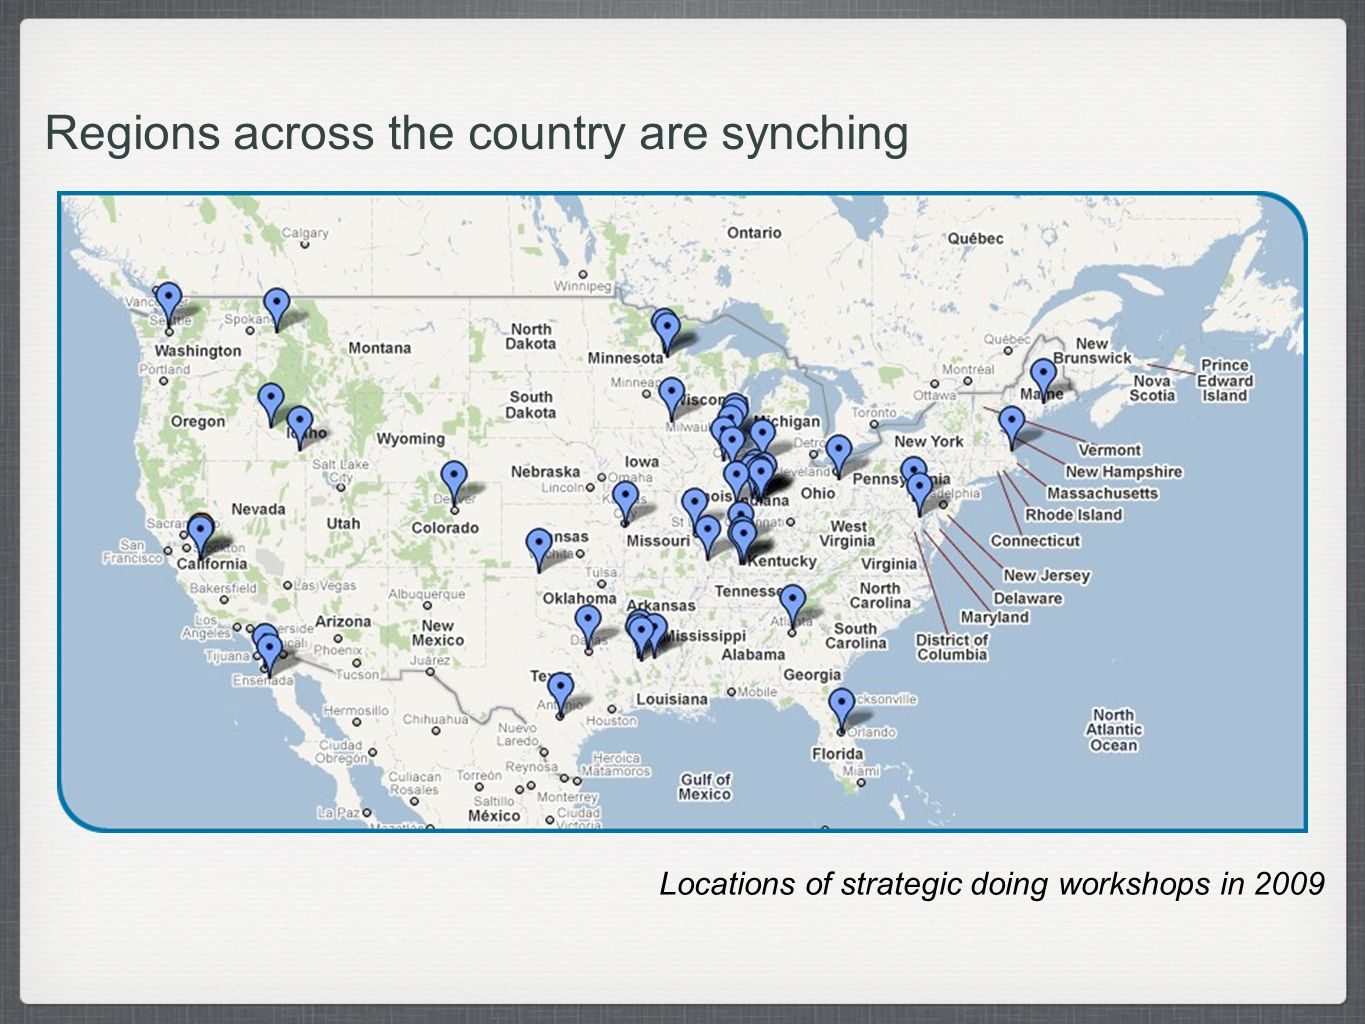 Regions across the country are synching Locations of strategic doing workshops in 2009